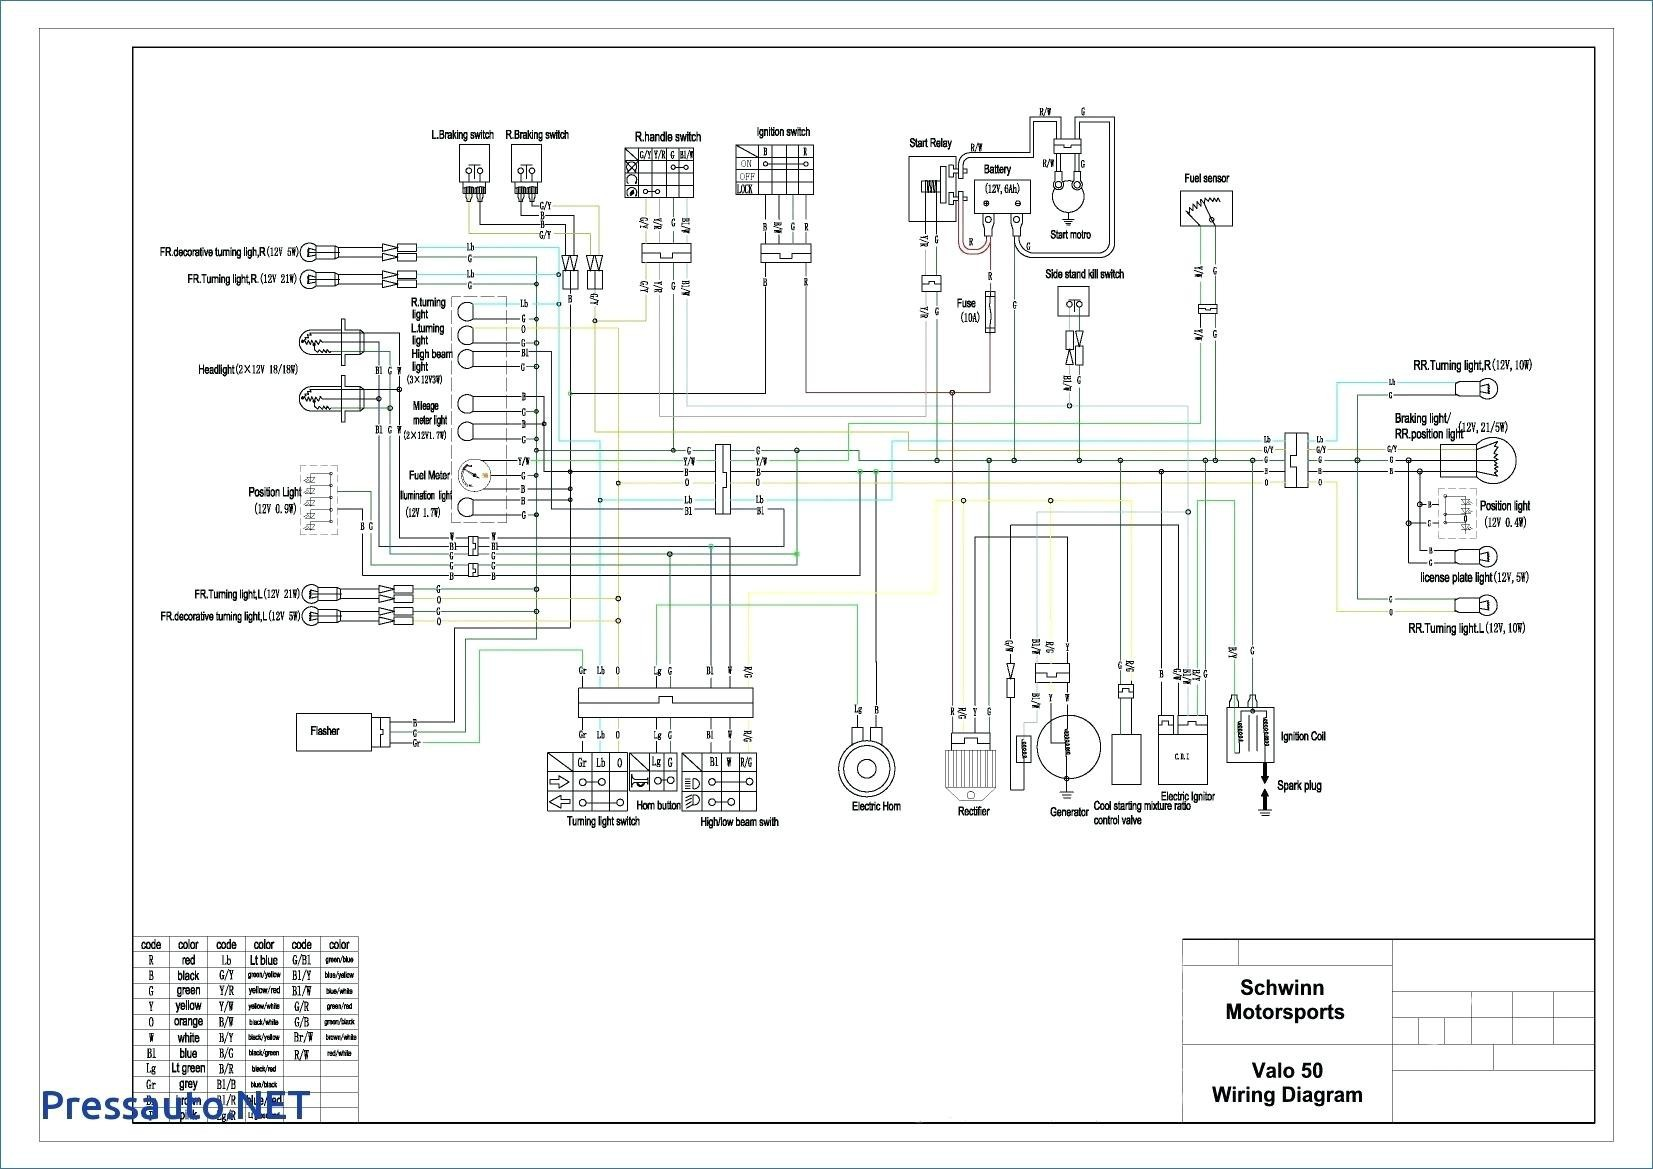 Vip Wiring Diagram Schematic